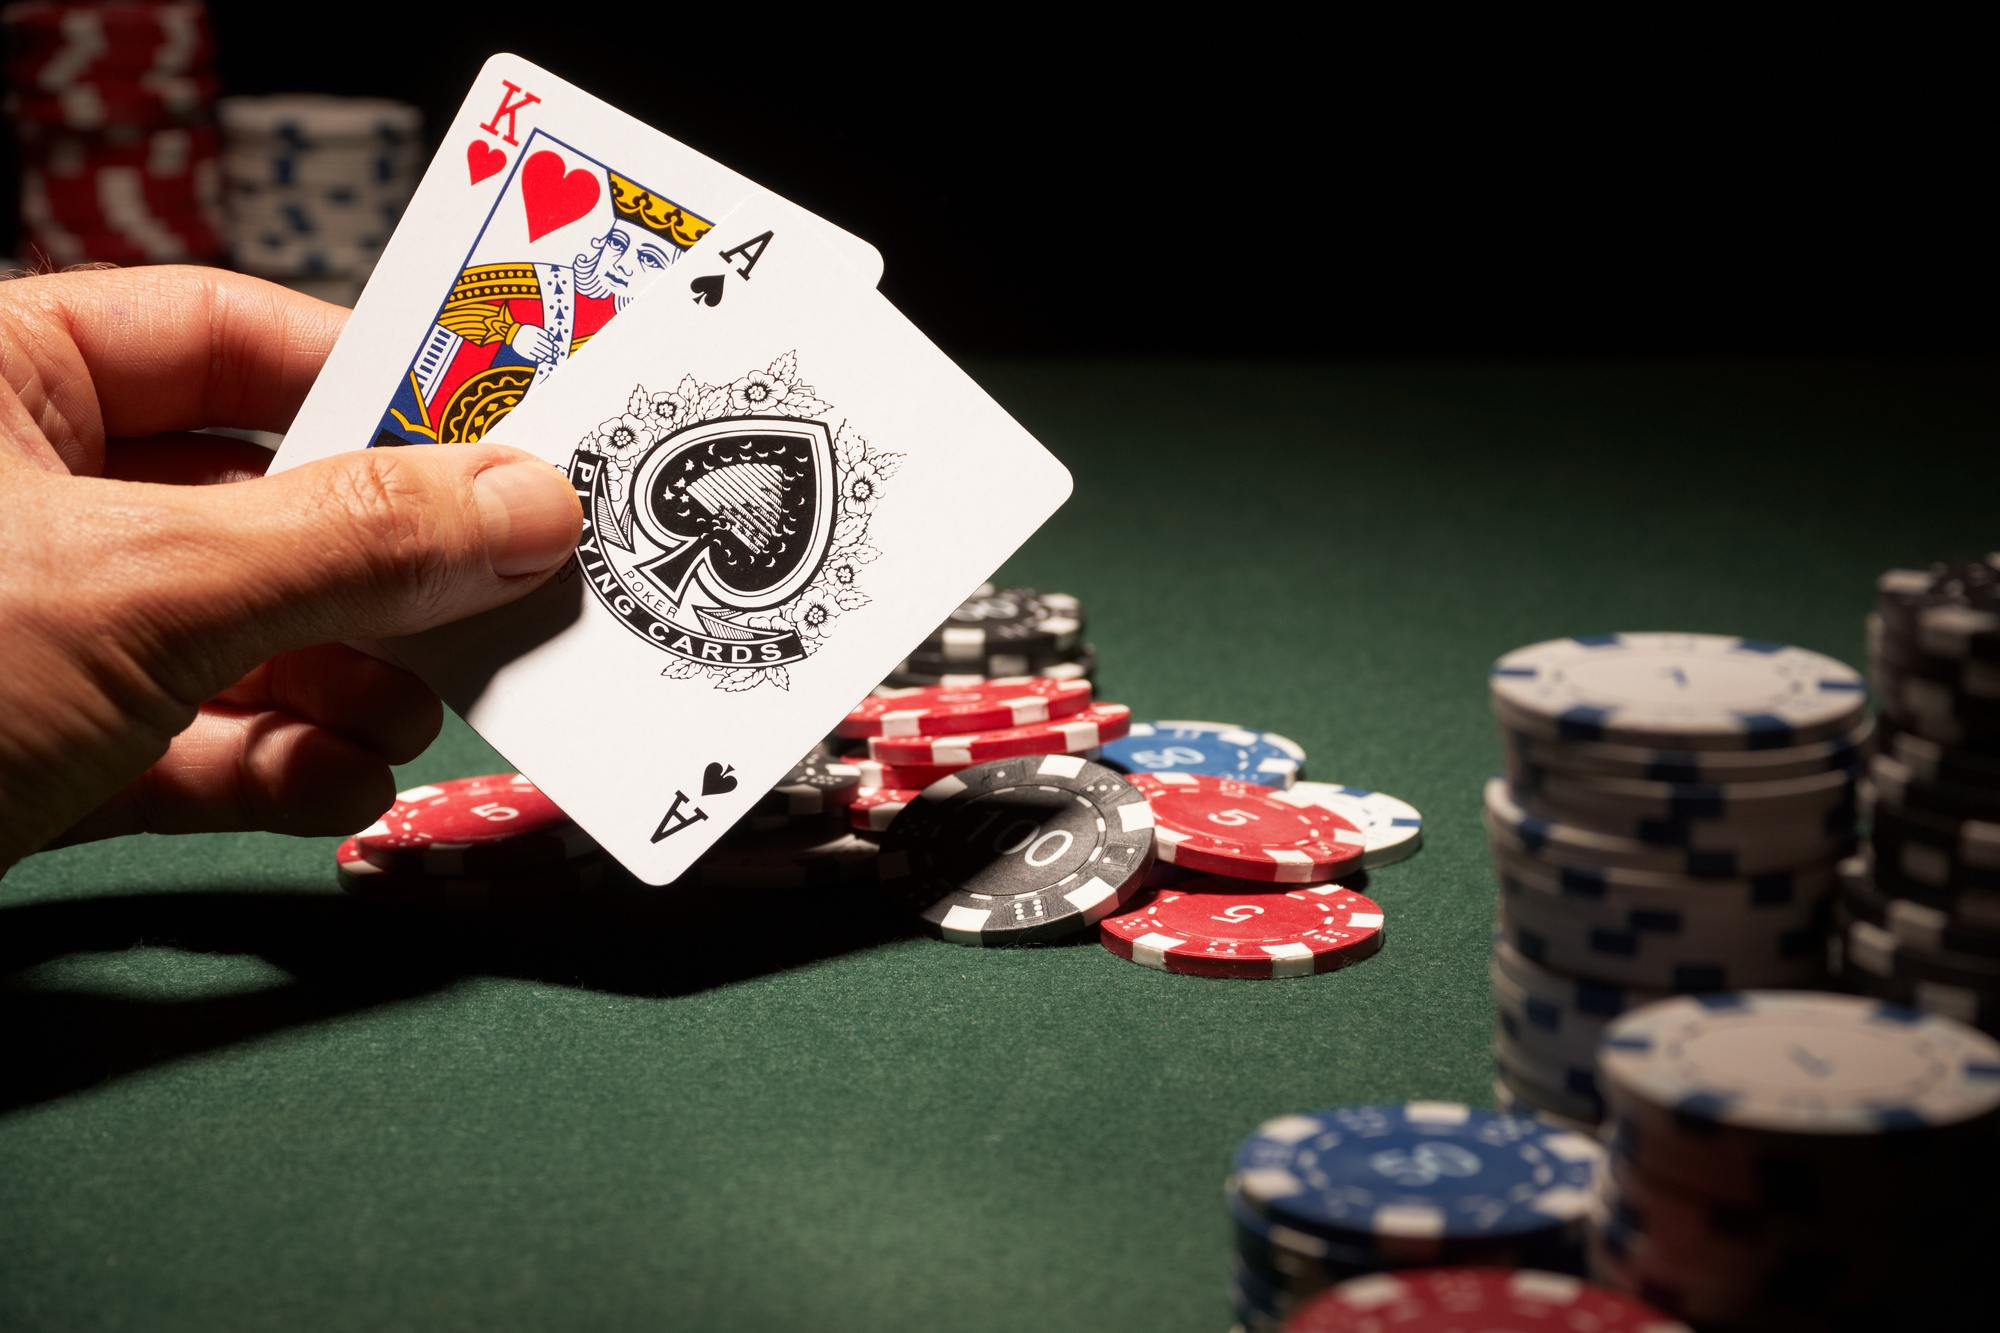 Blackjack Gives the Casino Rather a Small Advantage